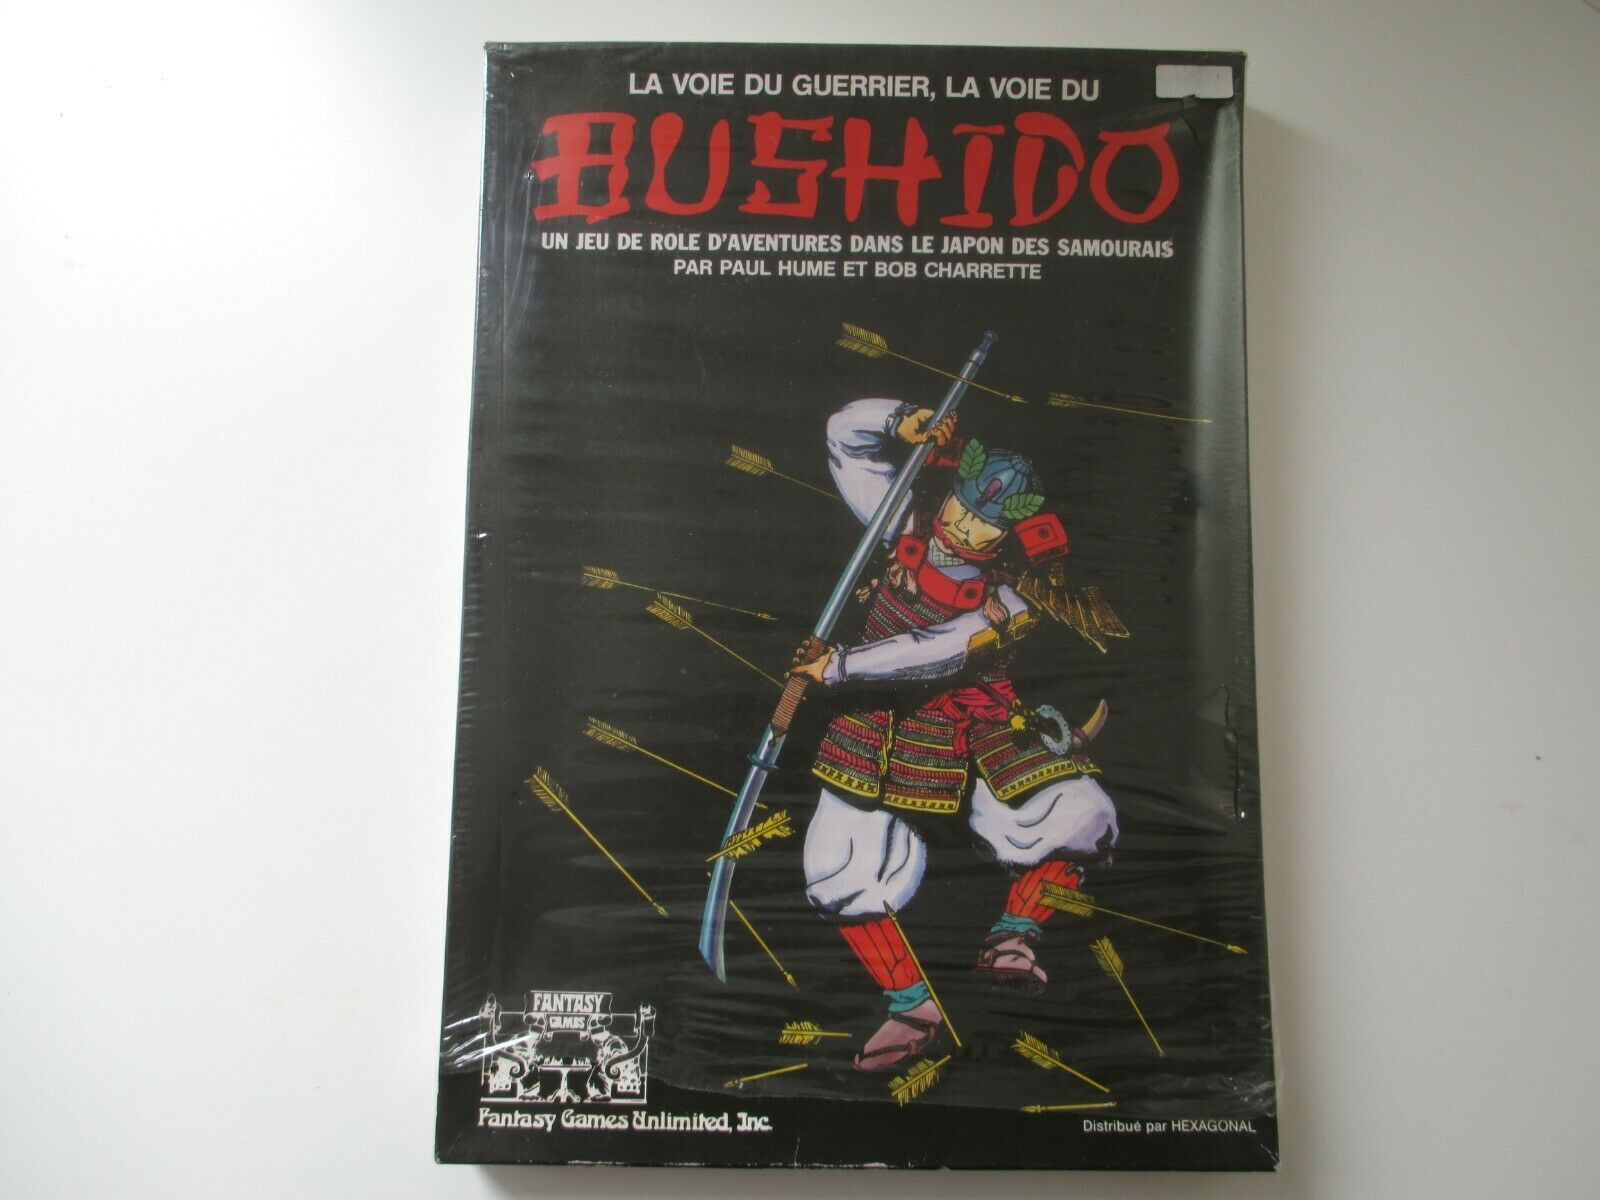 JEU DE ROLE autobusHIDO fantasyc giocoS UNLIMITED  NEUF BLISTER  incredibili sconti